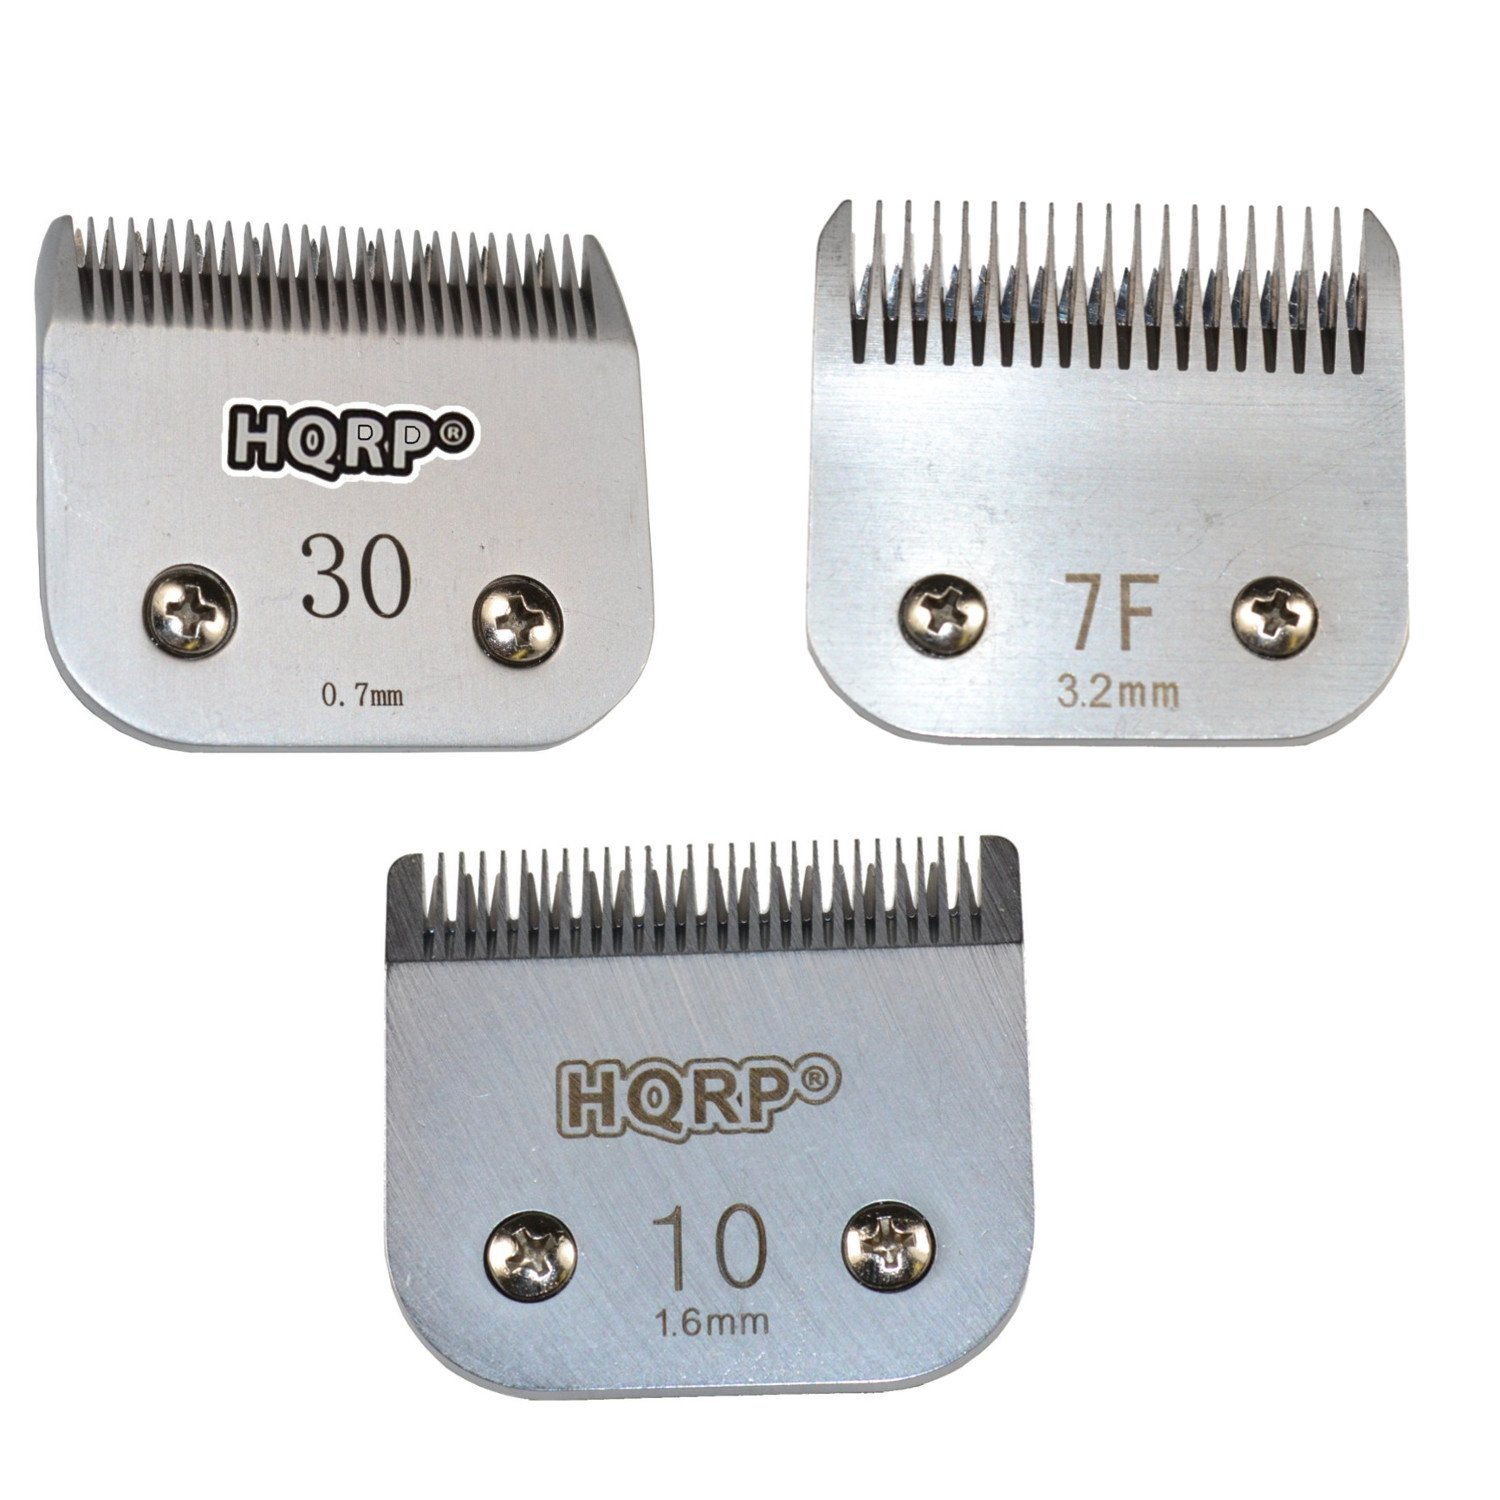 HQRP 3pcs Clipper Blades Set, Sizes 7F /10/30 for Poodle Hair Cutting Sporting Miami Terrier Style, Dog Grooming Clipping Trimming Coaster